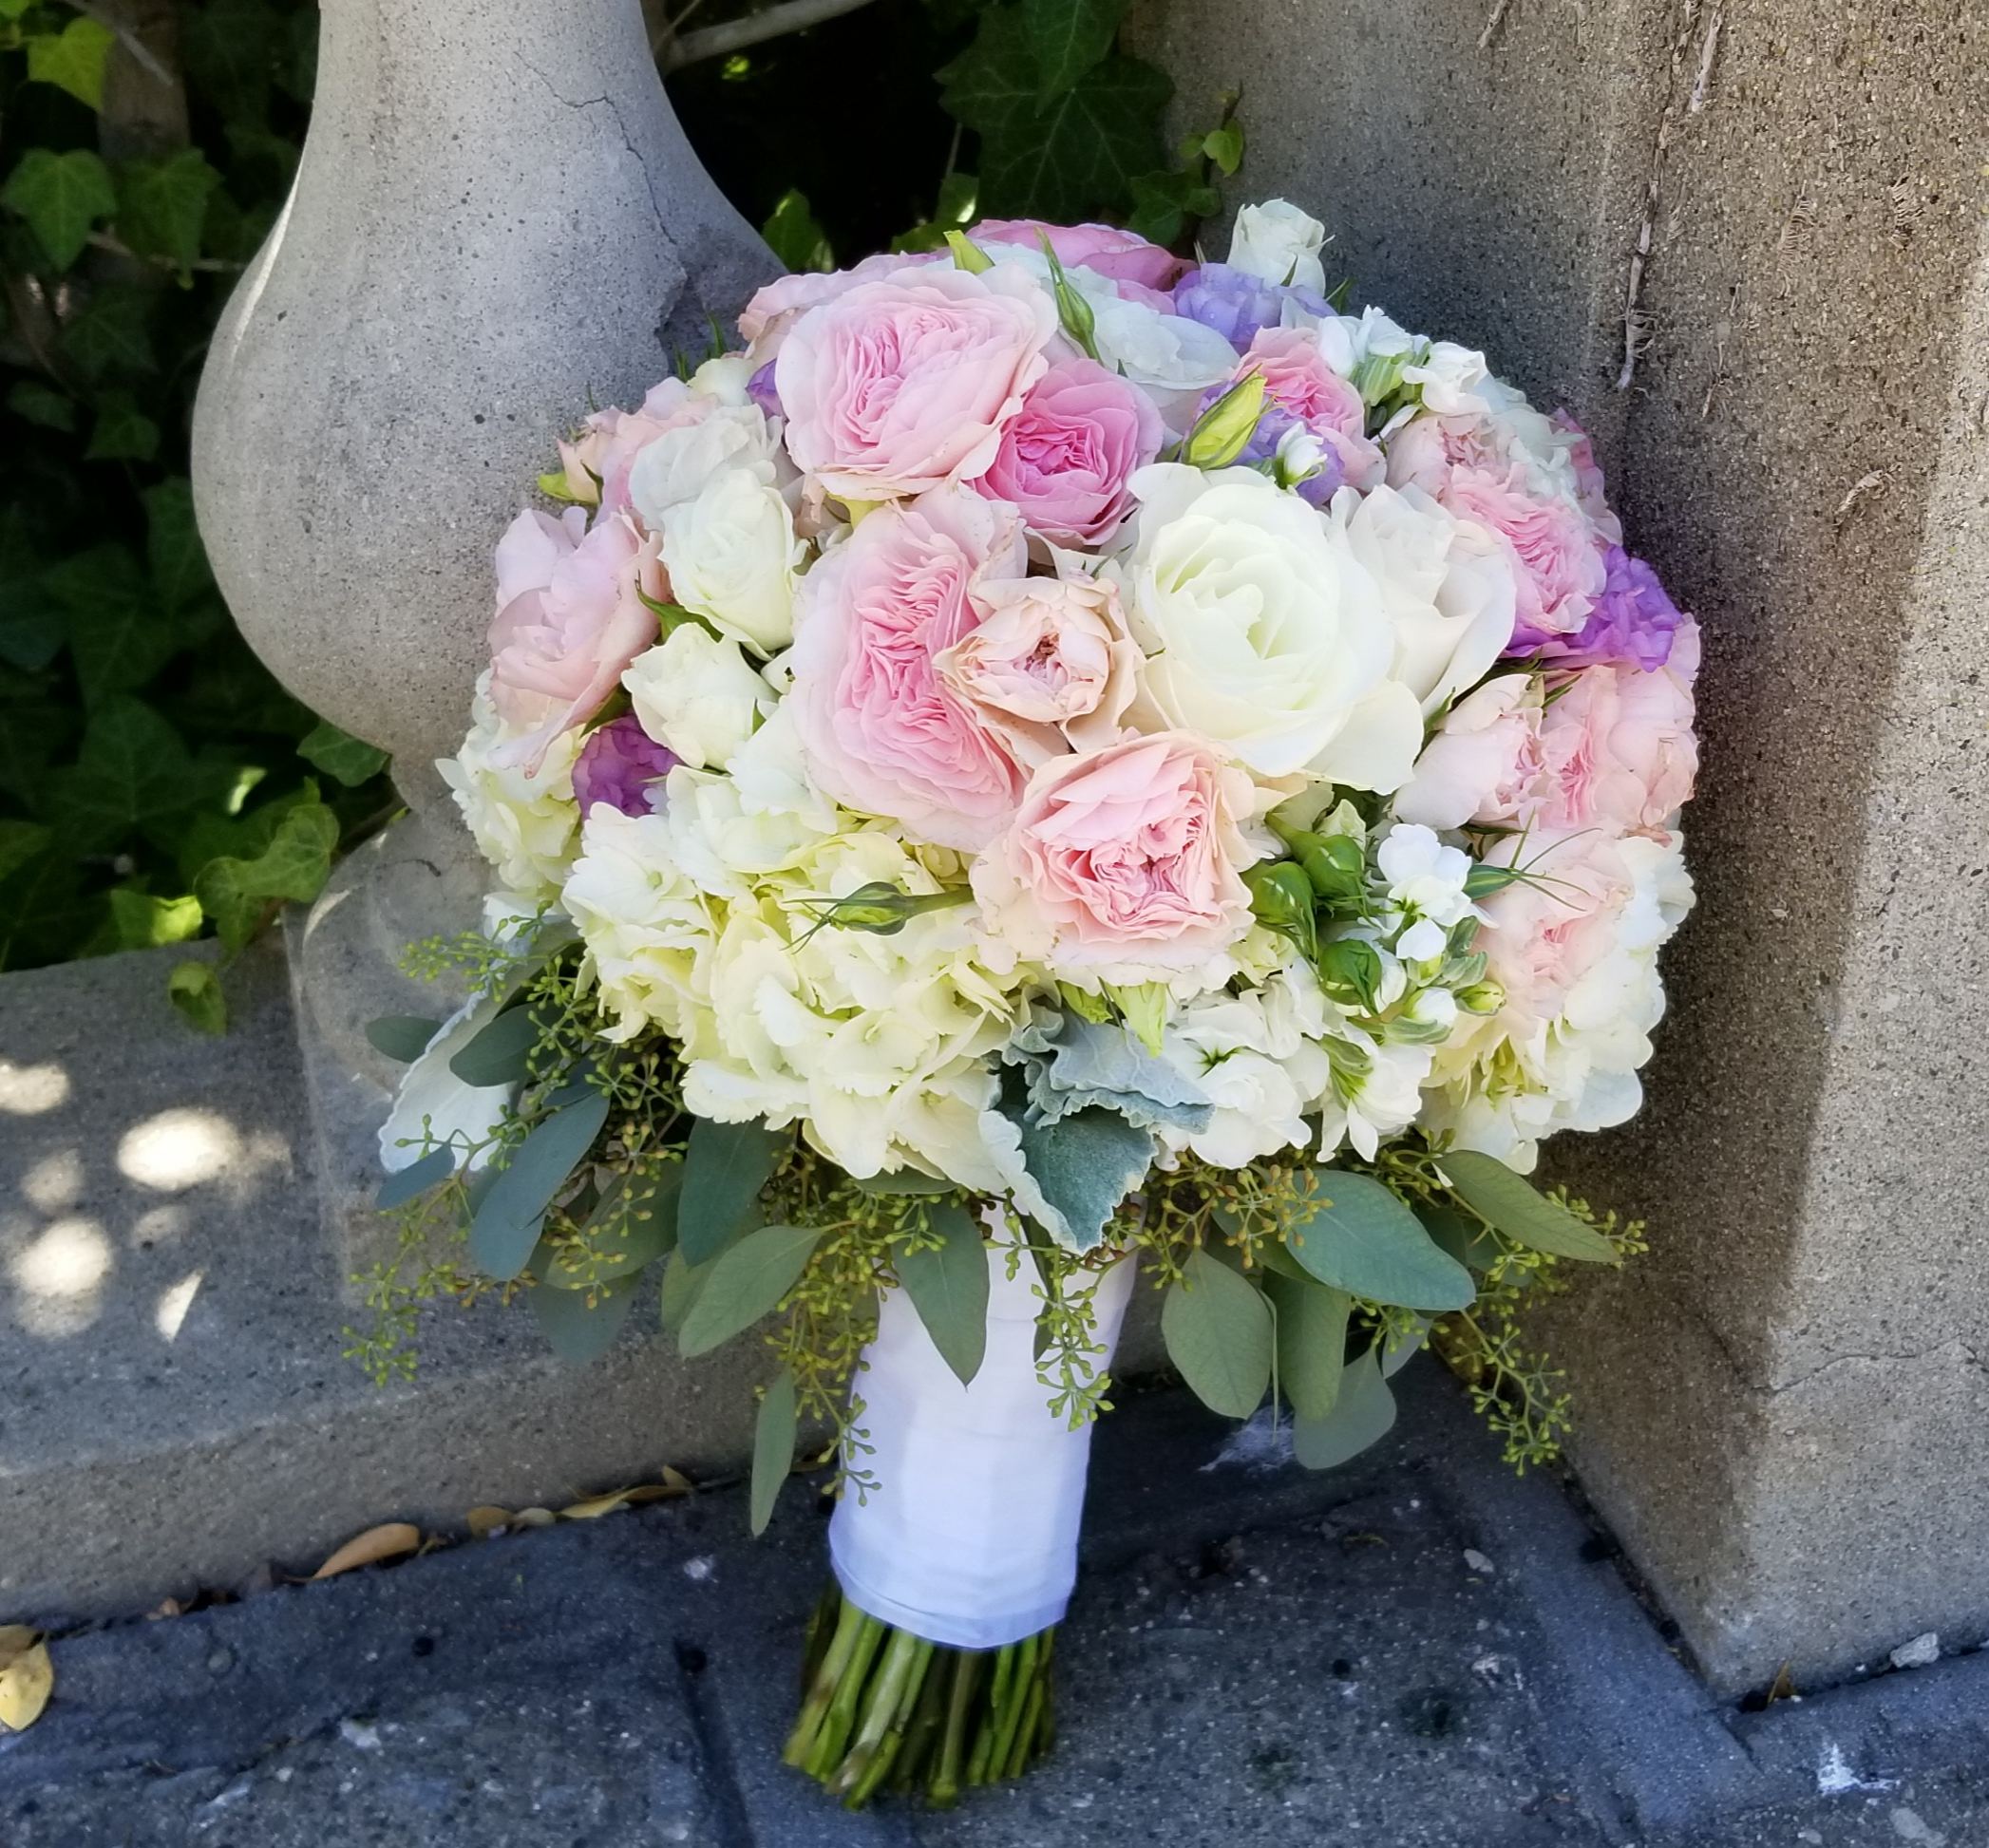 2018 Petal Town Flowers Bouquet Blush and Ivory2.jpg